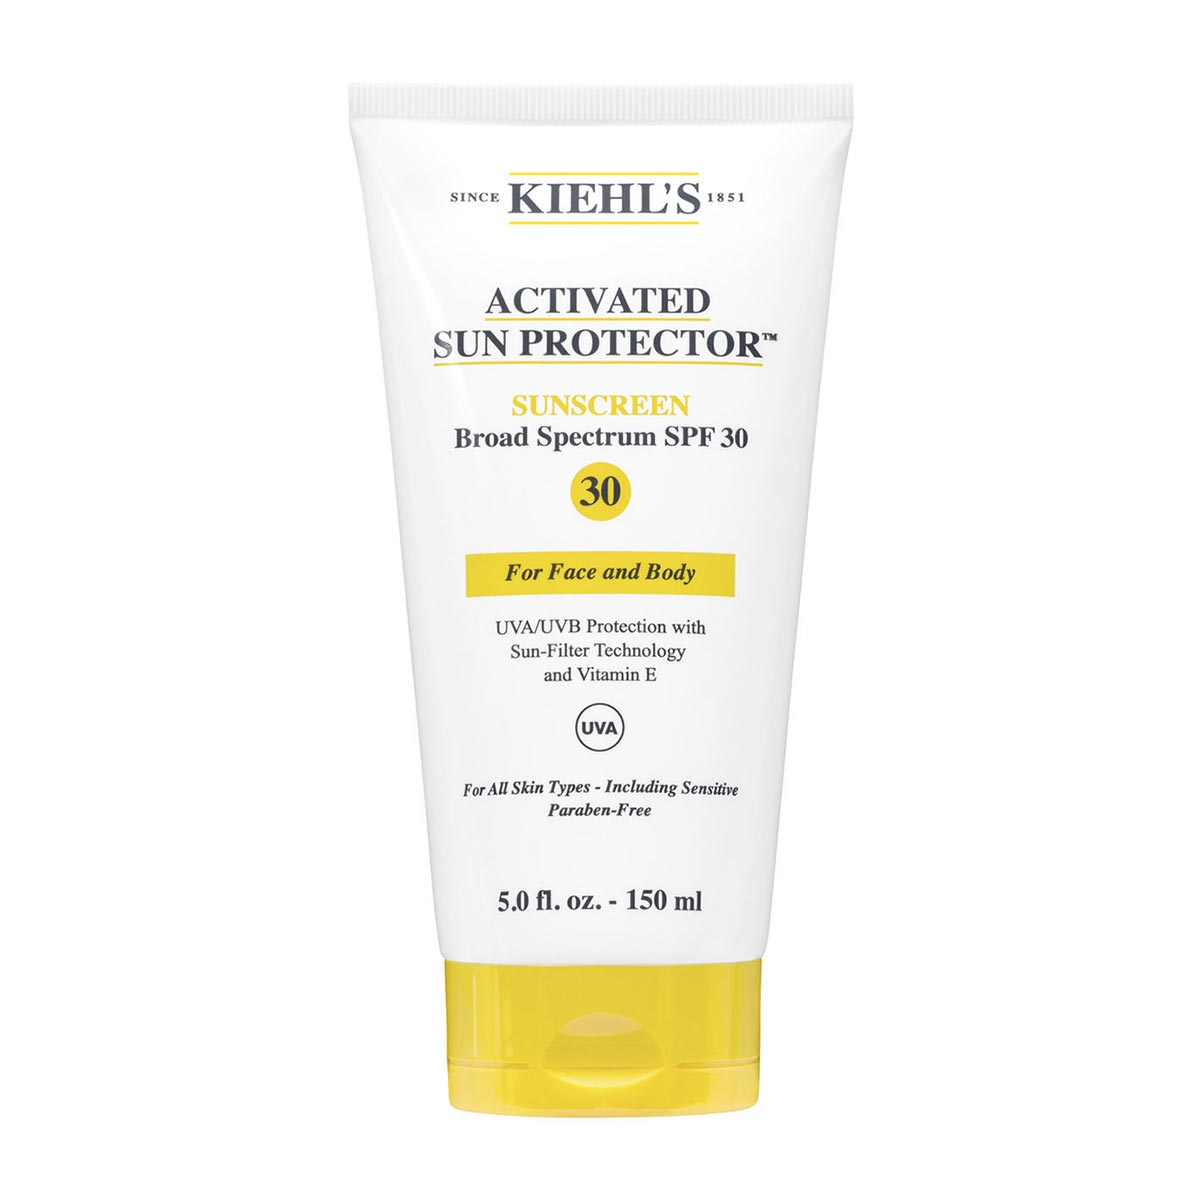 Kiehl's Activated Sun Protector Sunscreen For Face and Body SPF 30, 150ml